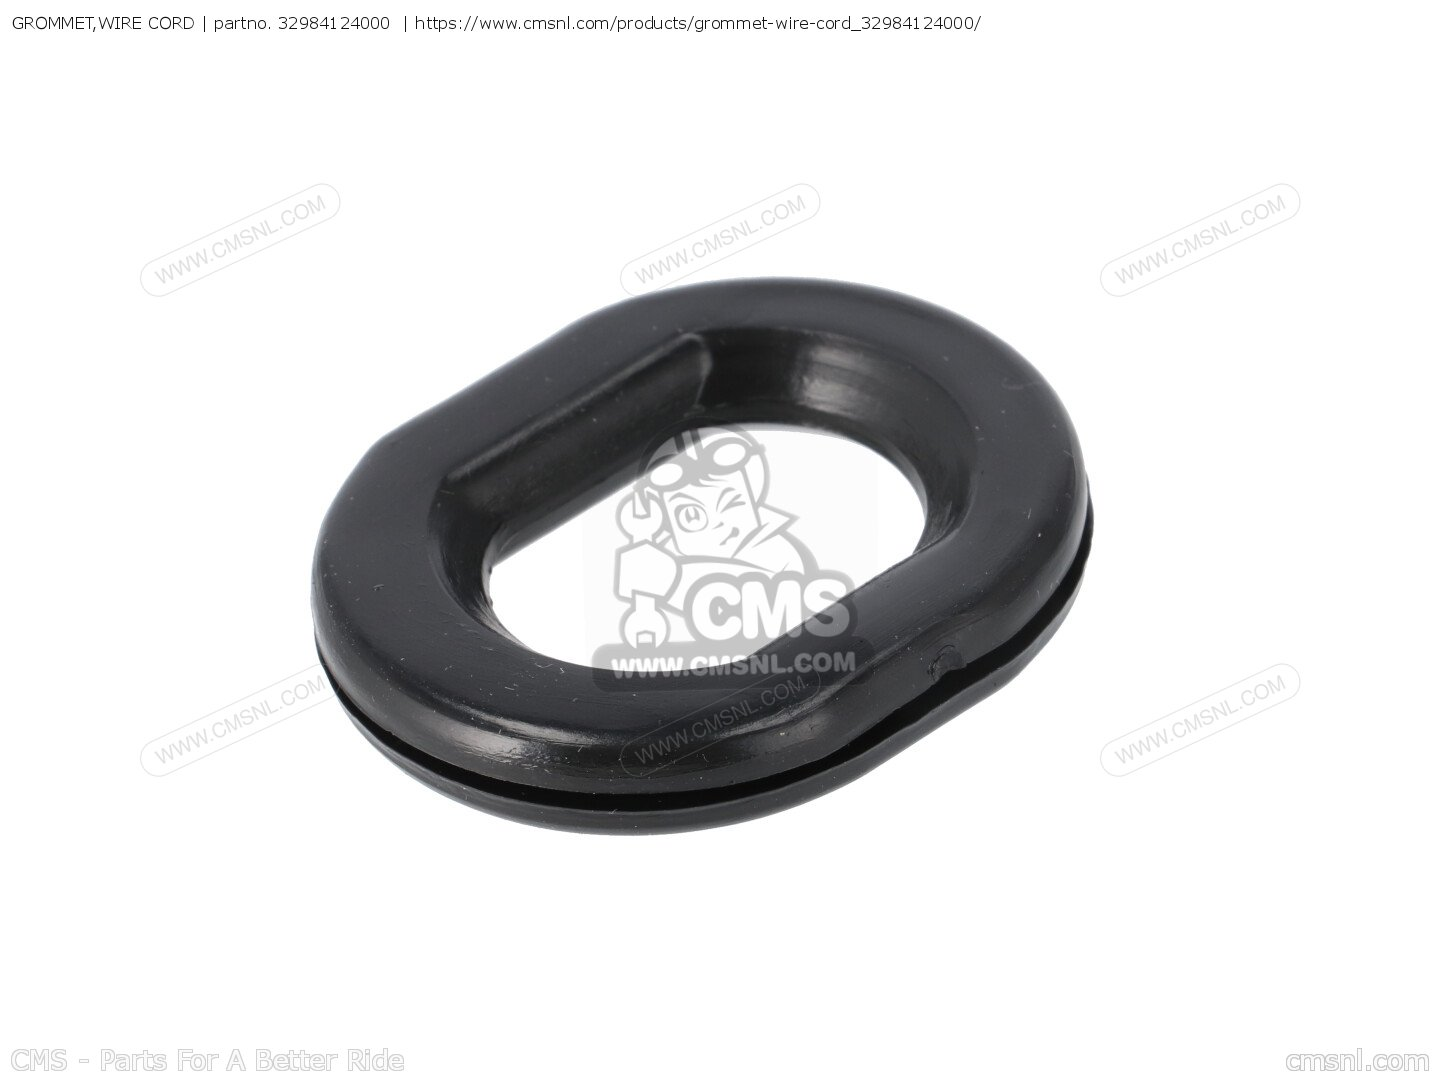 Grommetwire Cord Fits Cf50d Japanese Home Market Cf50 330 Wiring Grommets White Grommet Wire Photo